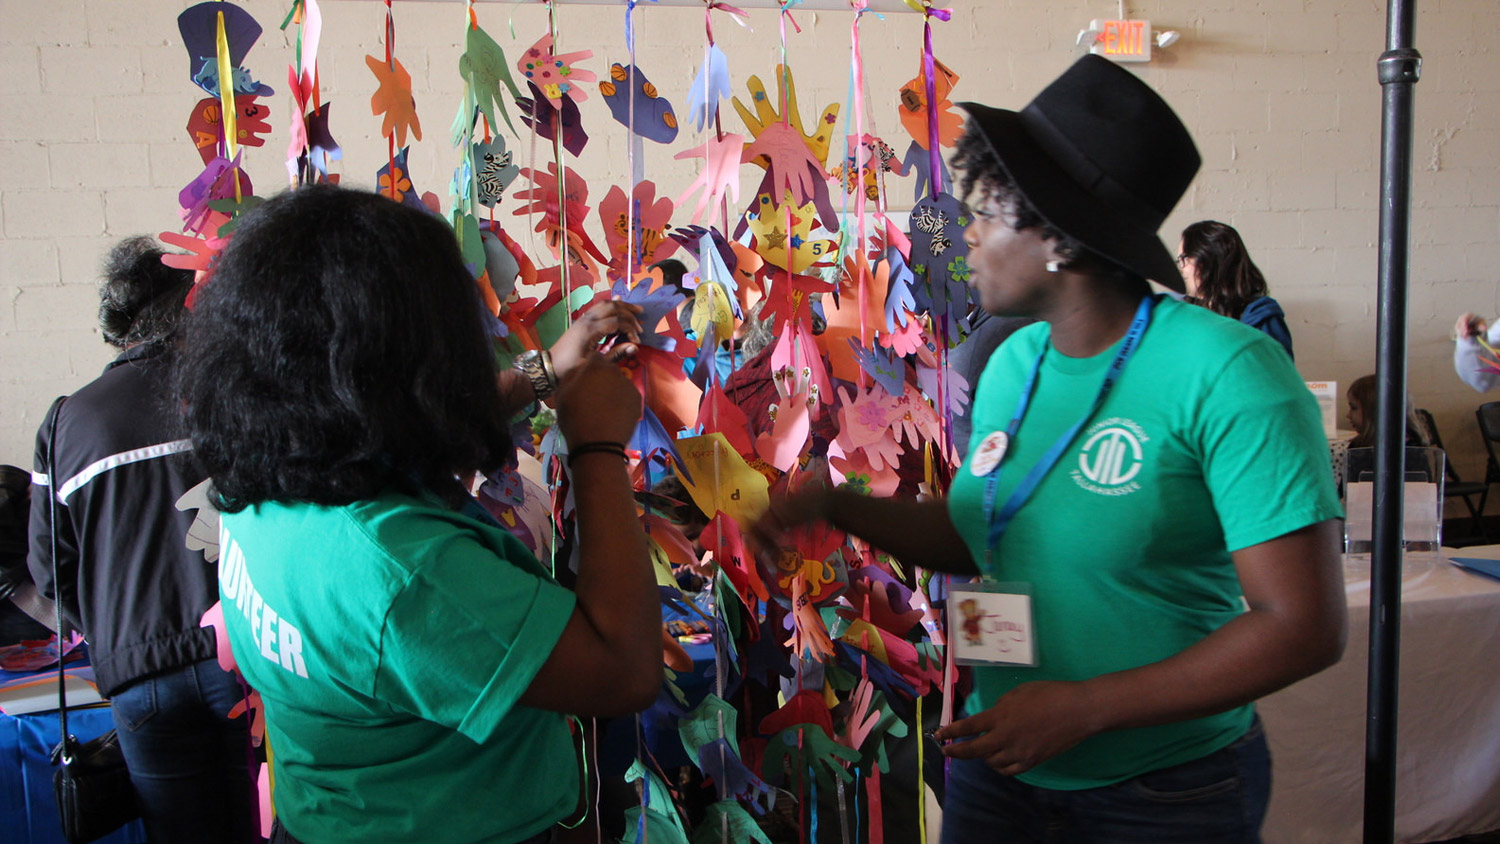 two women in green volunteer shirts next to strung up paper hands